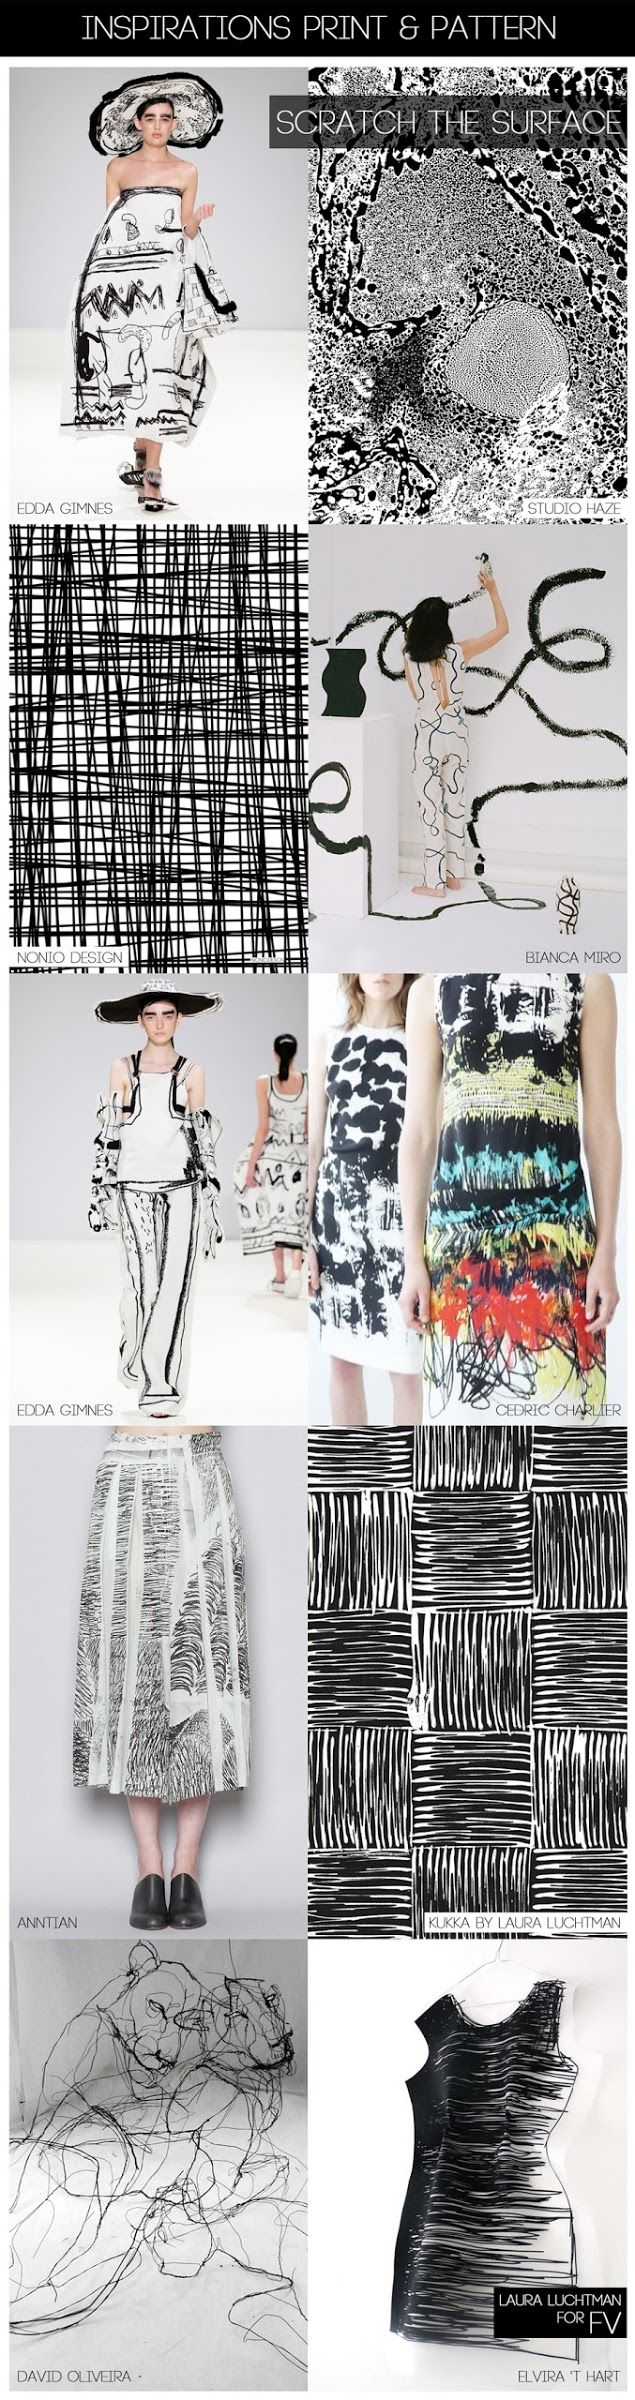 FV contributor Laura Luchtman from Kukka [INSPIRATIONS + PRINT ] series. Laura's background is in the field of Surface/Textile Design and Fashion Illustration and specializes in Bodyfashion. Note he